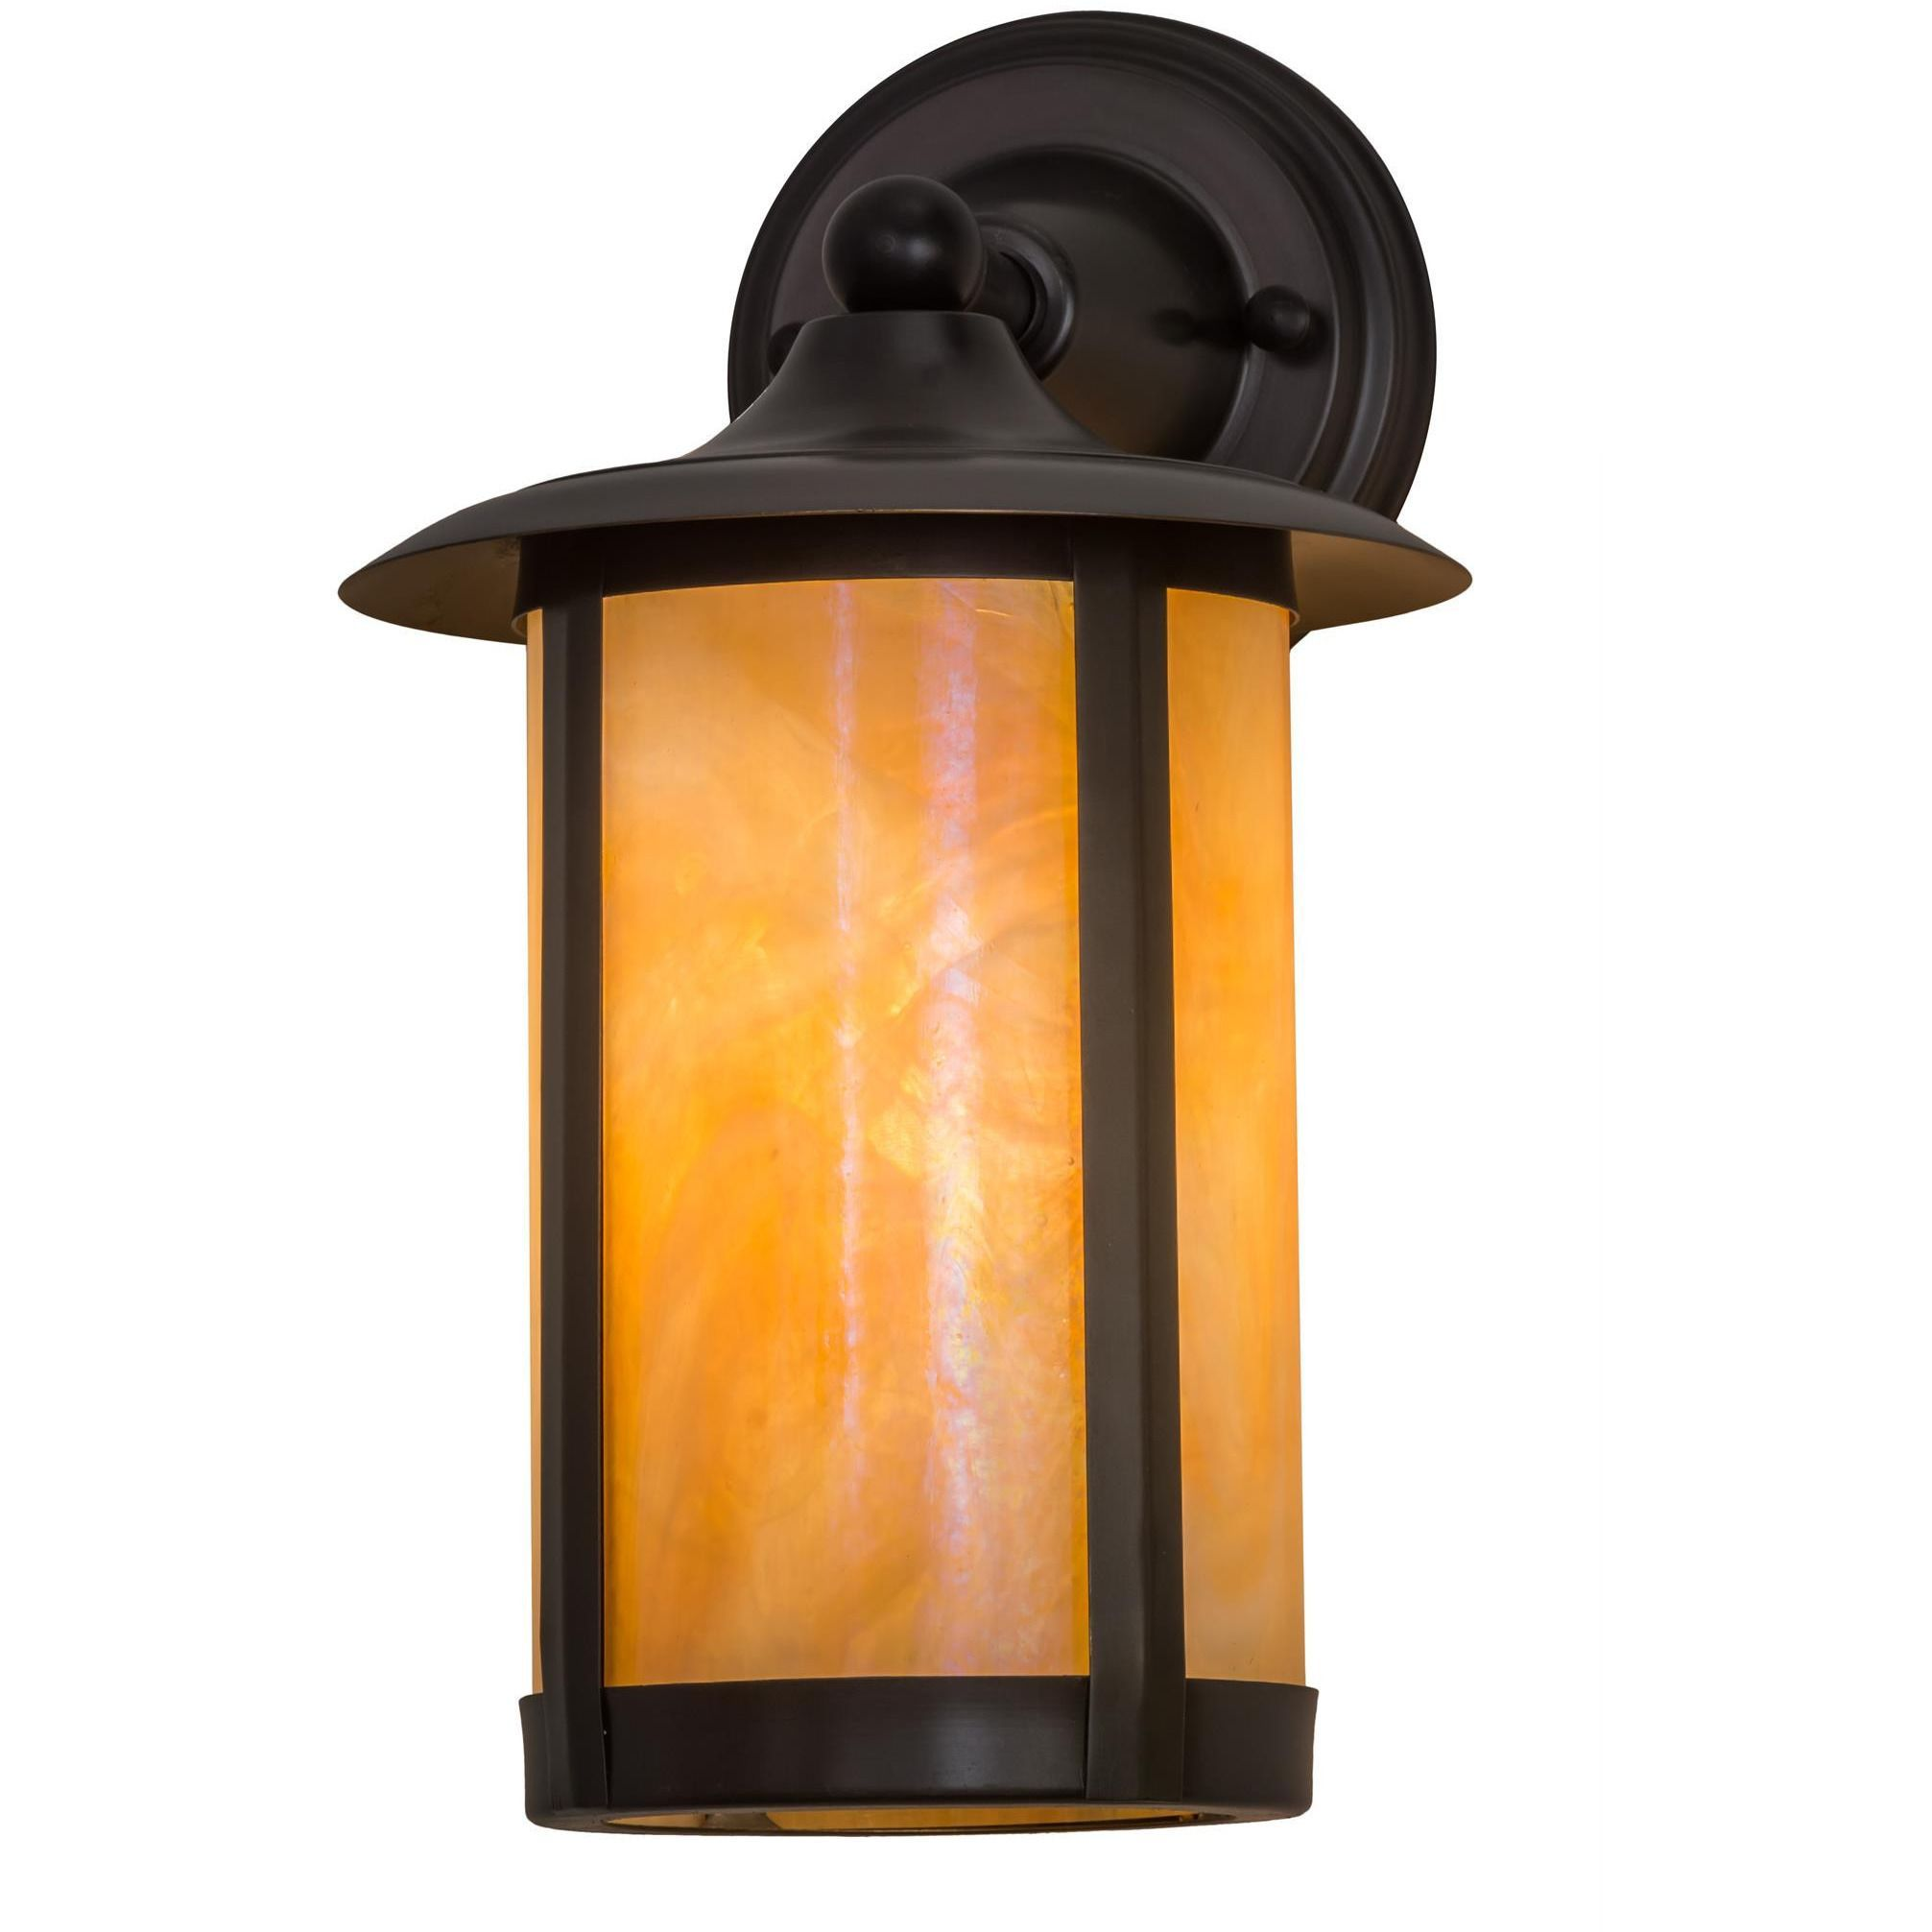 8 Inch W Fulton Prime Solid Mount Wall Sconce - Custom Made